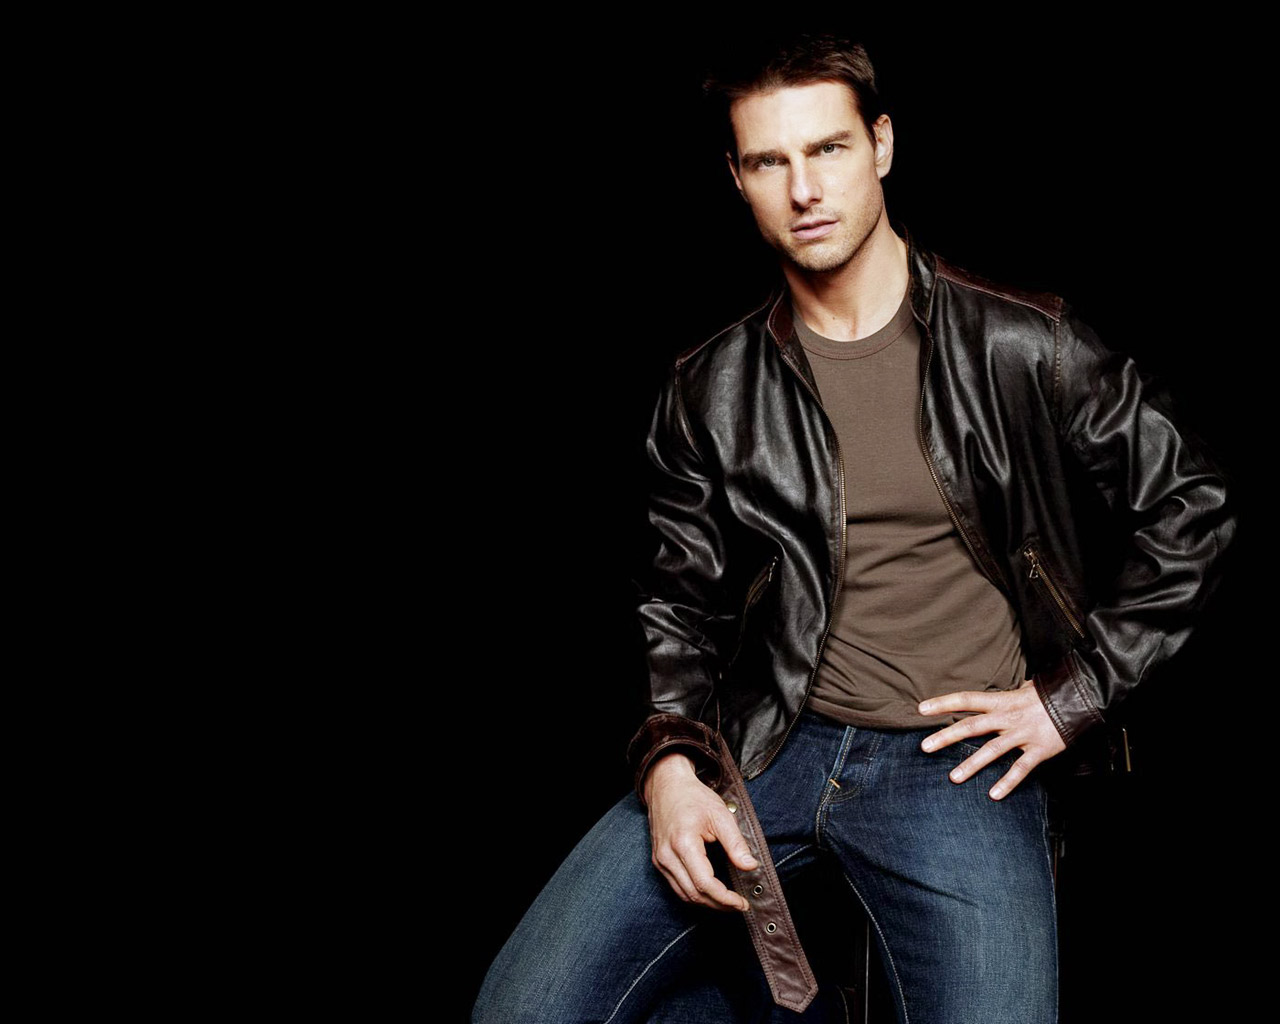 Most Handsome Hollywood Star Tom Cruise